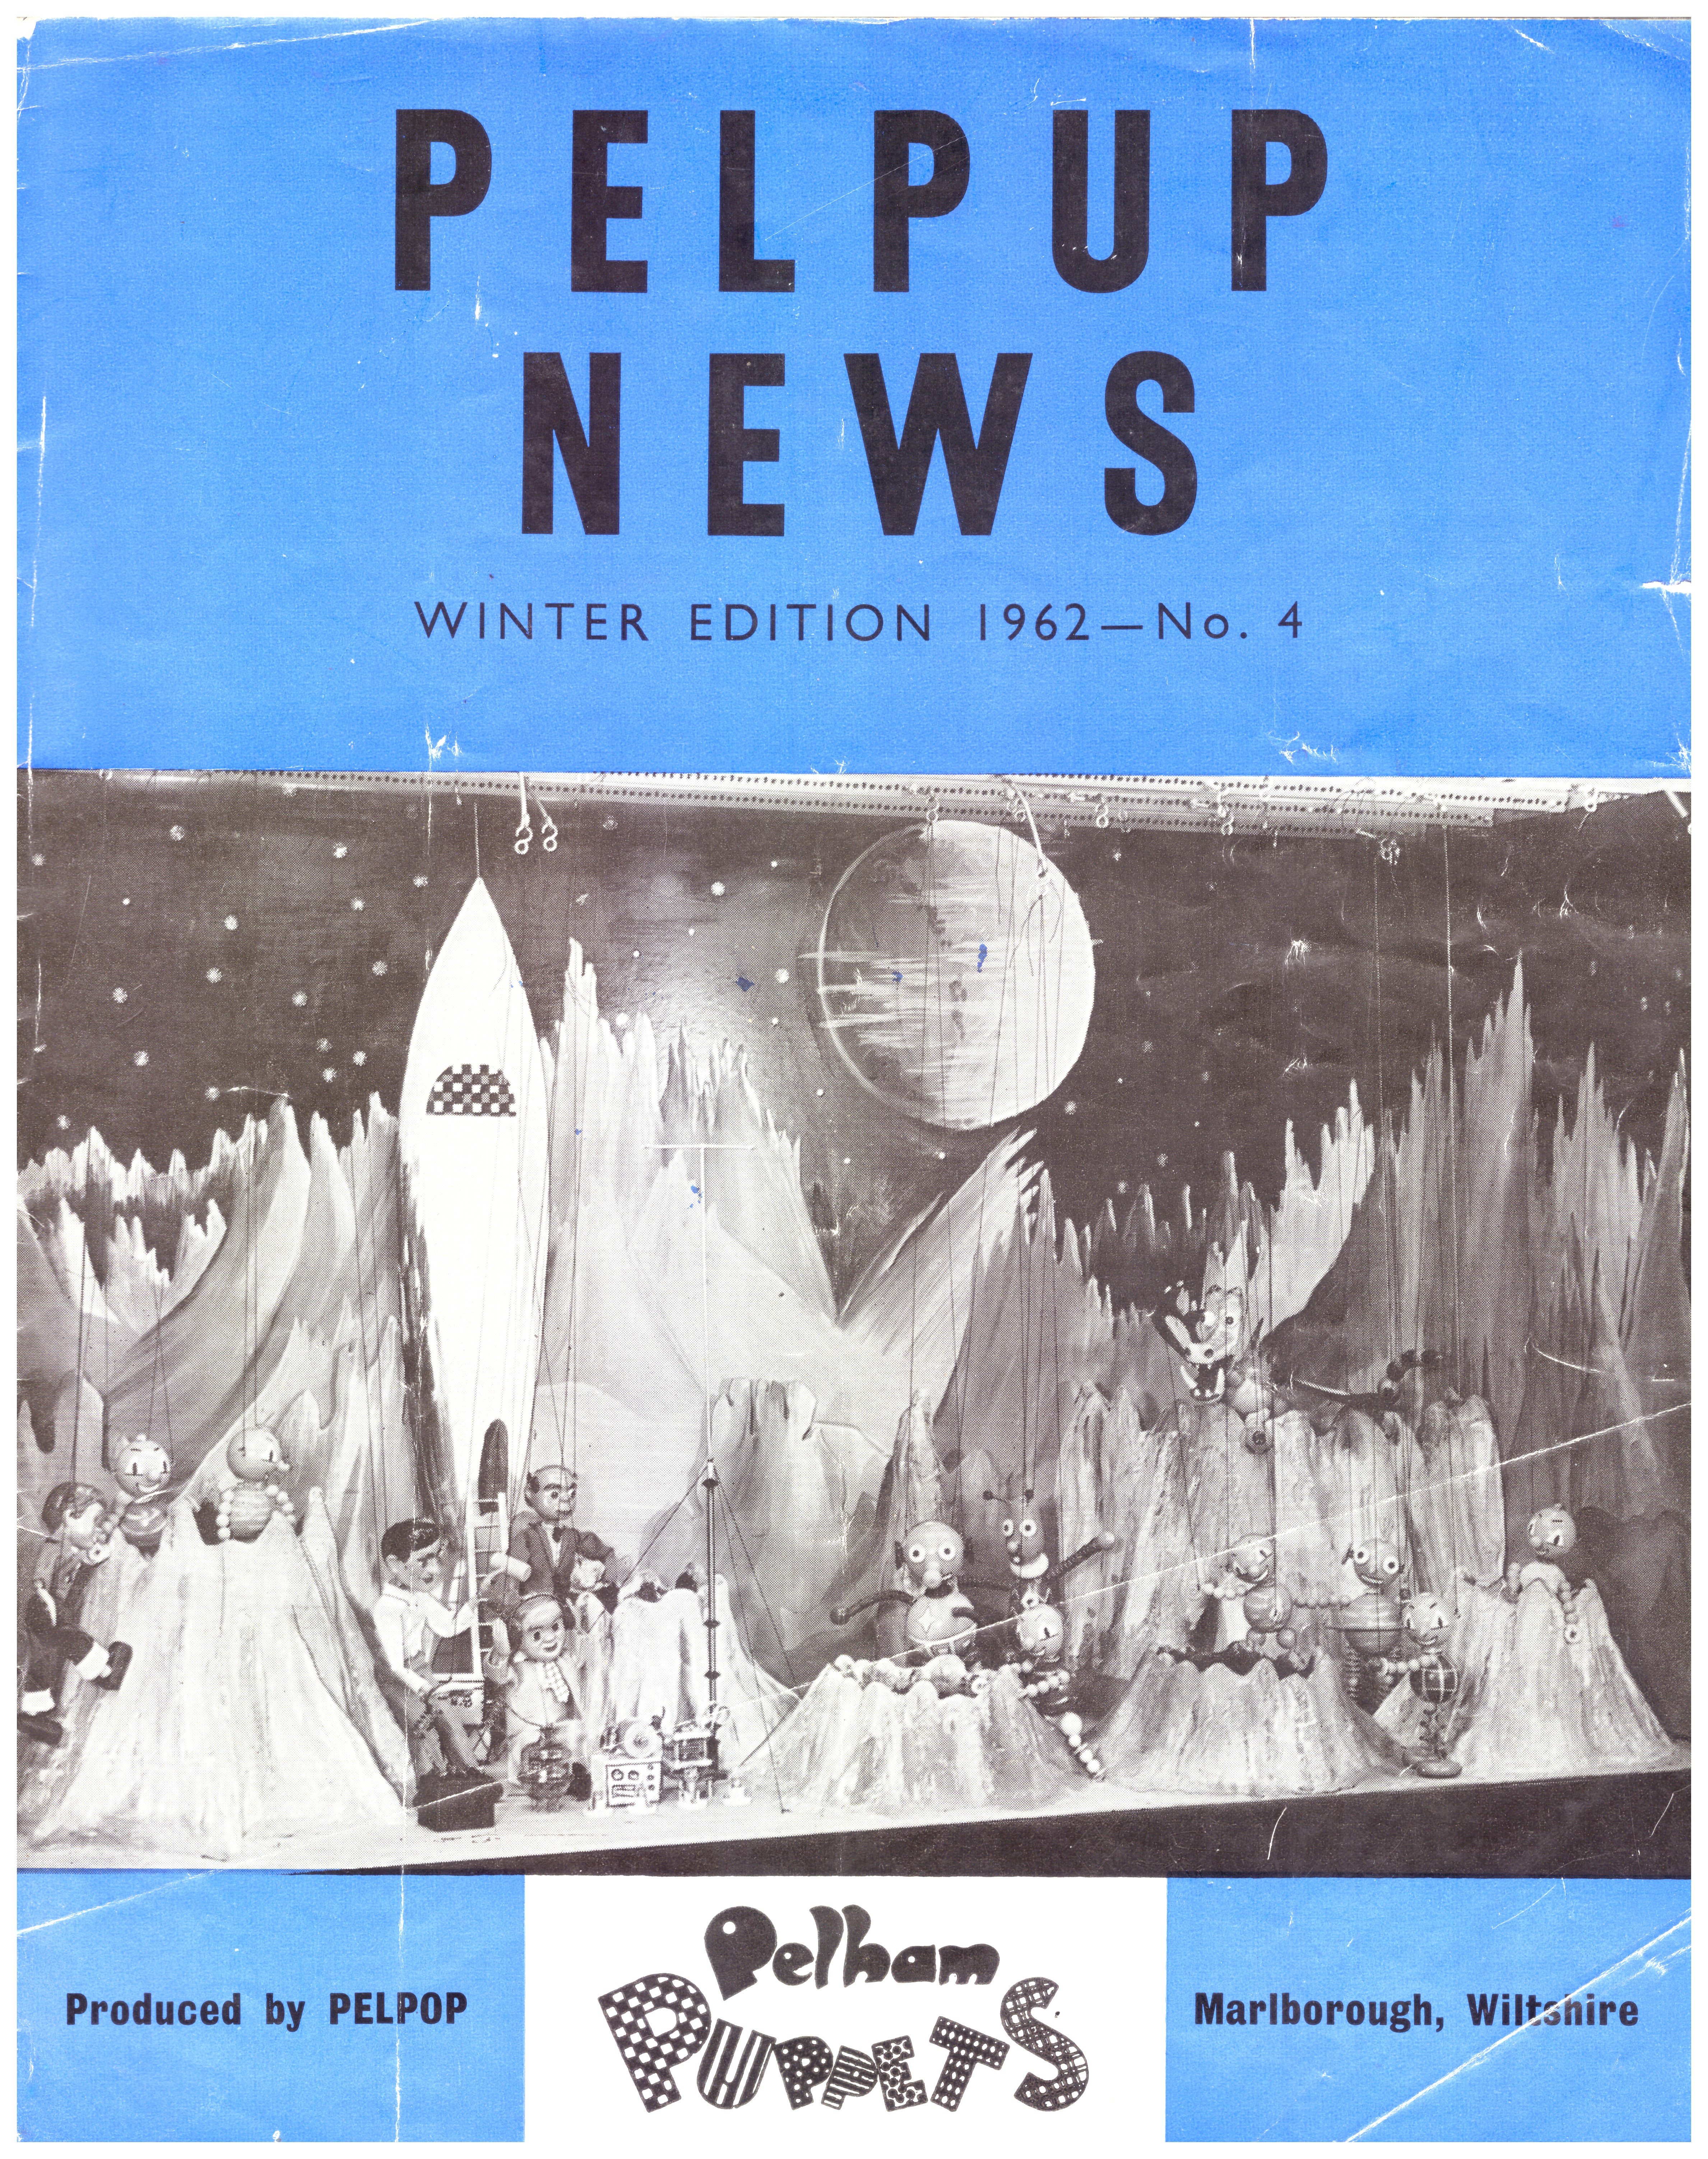 Winter Edition 1962 - Number 4